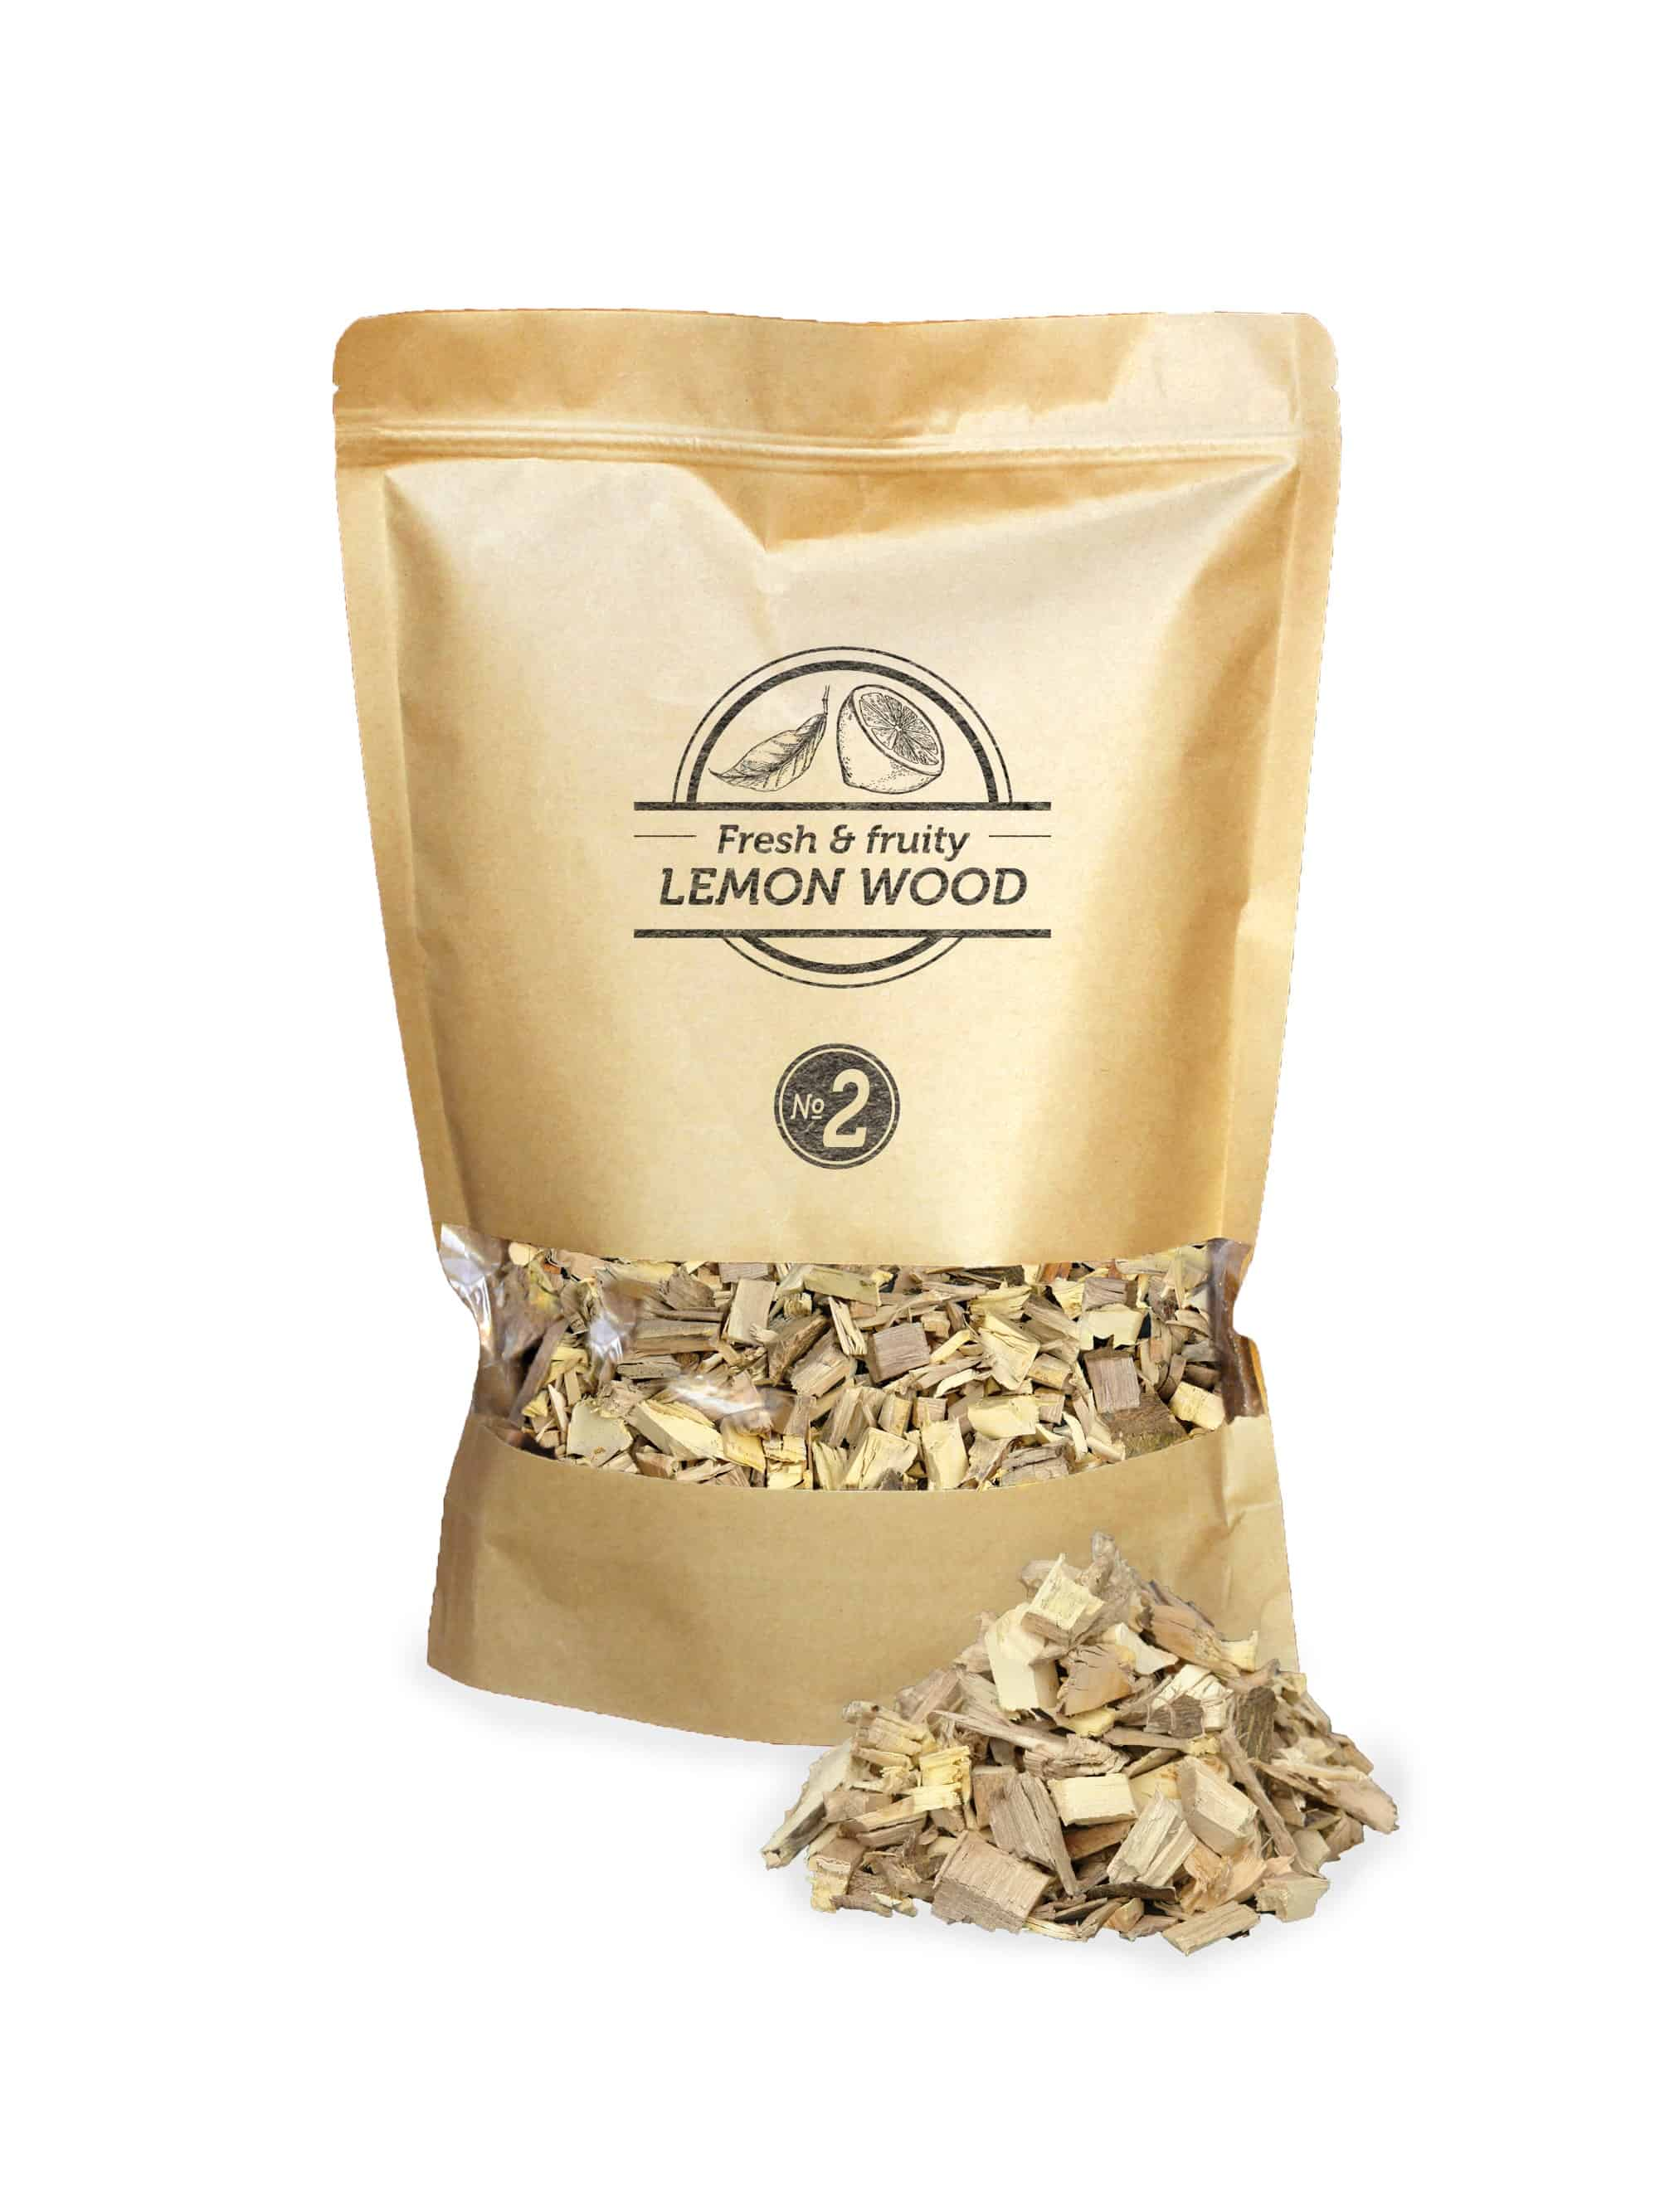 SOW Lemon Wood Smoking Chips Nº2